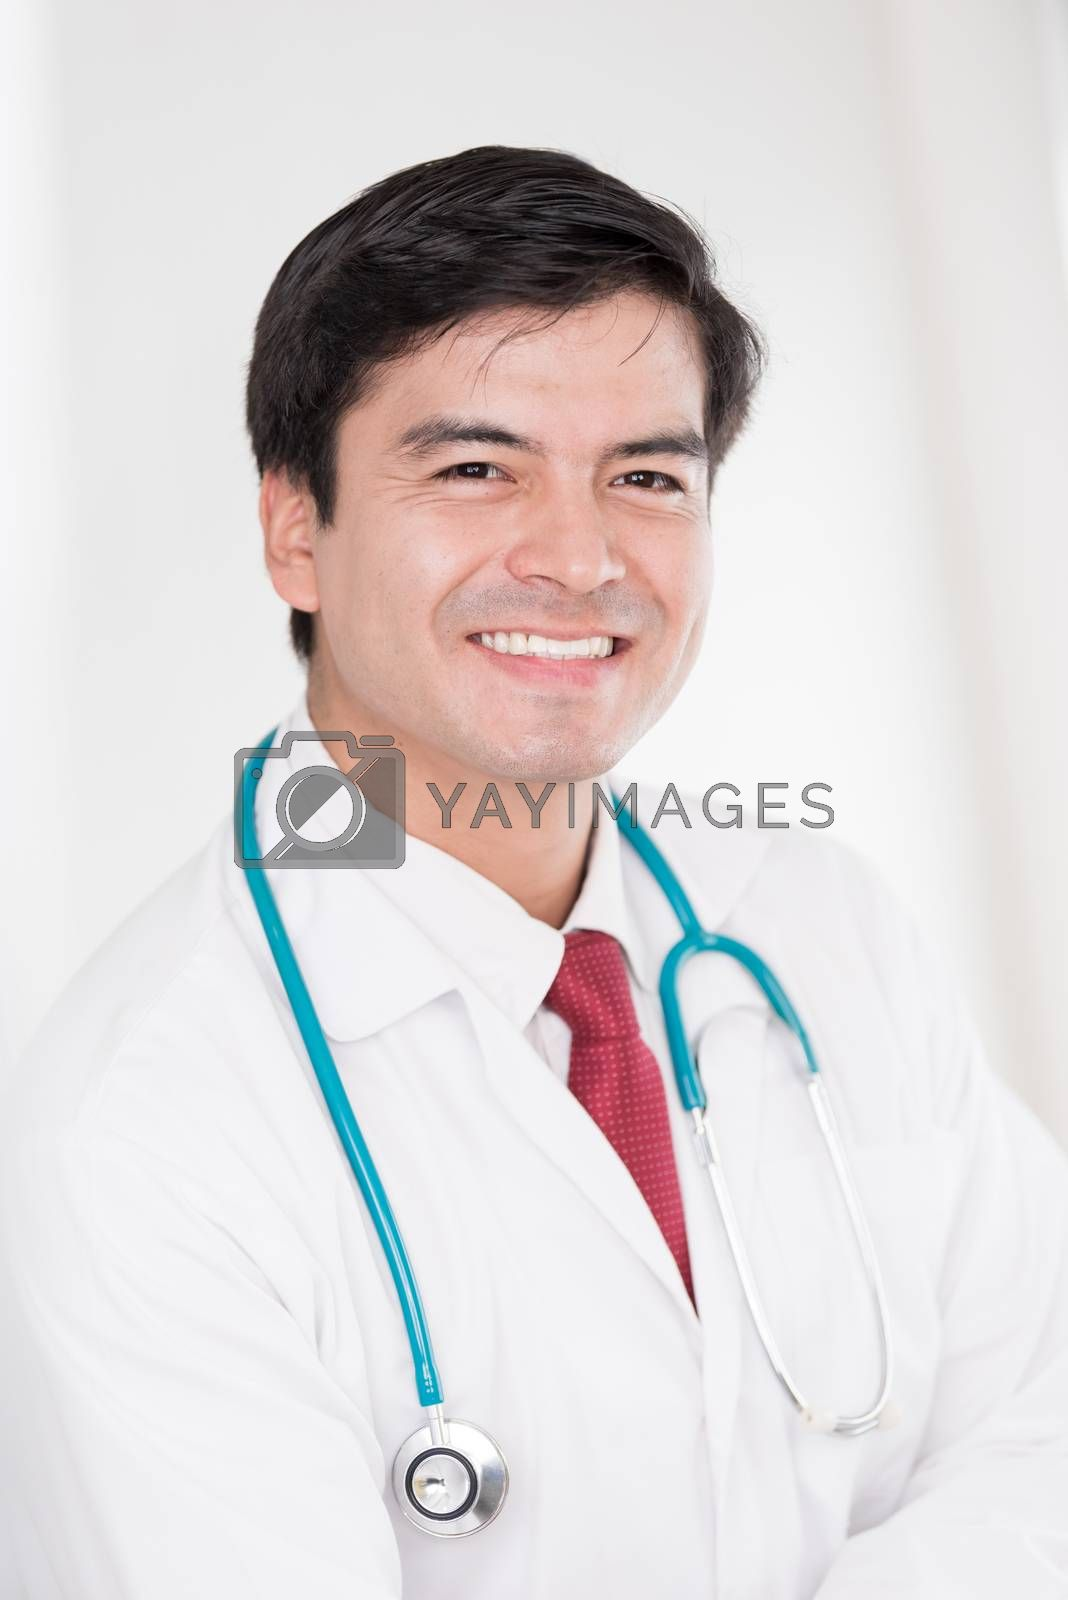 A portrait of a doctor man with smiling and happiness at the hos by animagesdesign